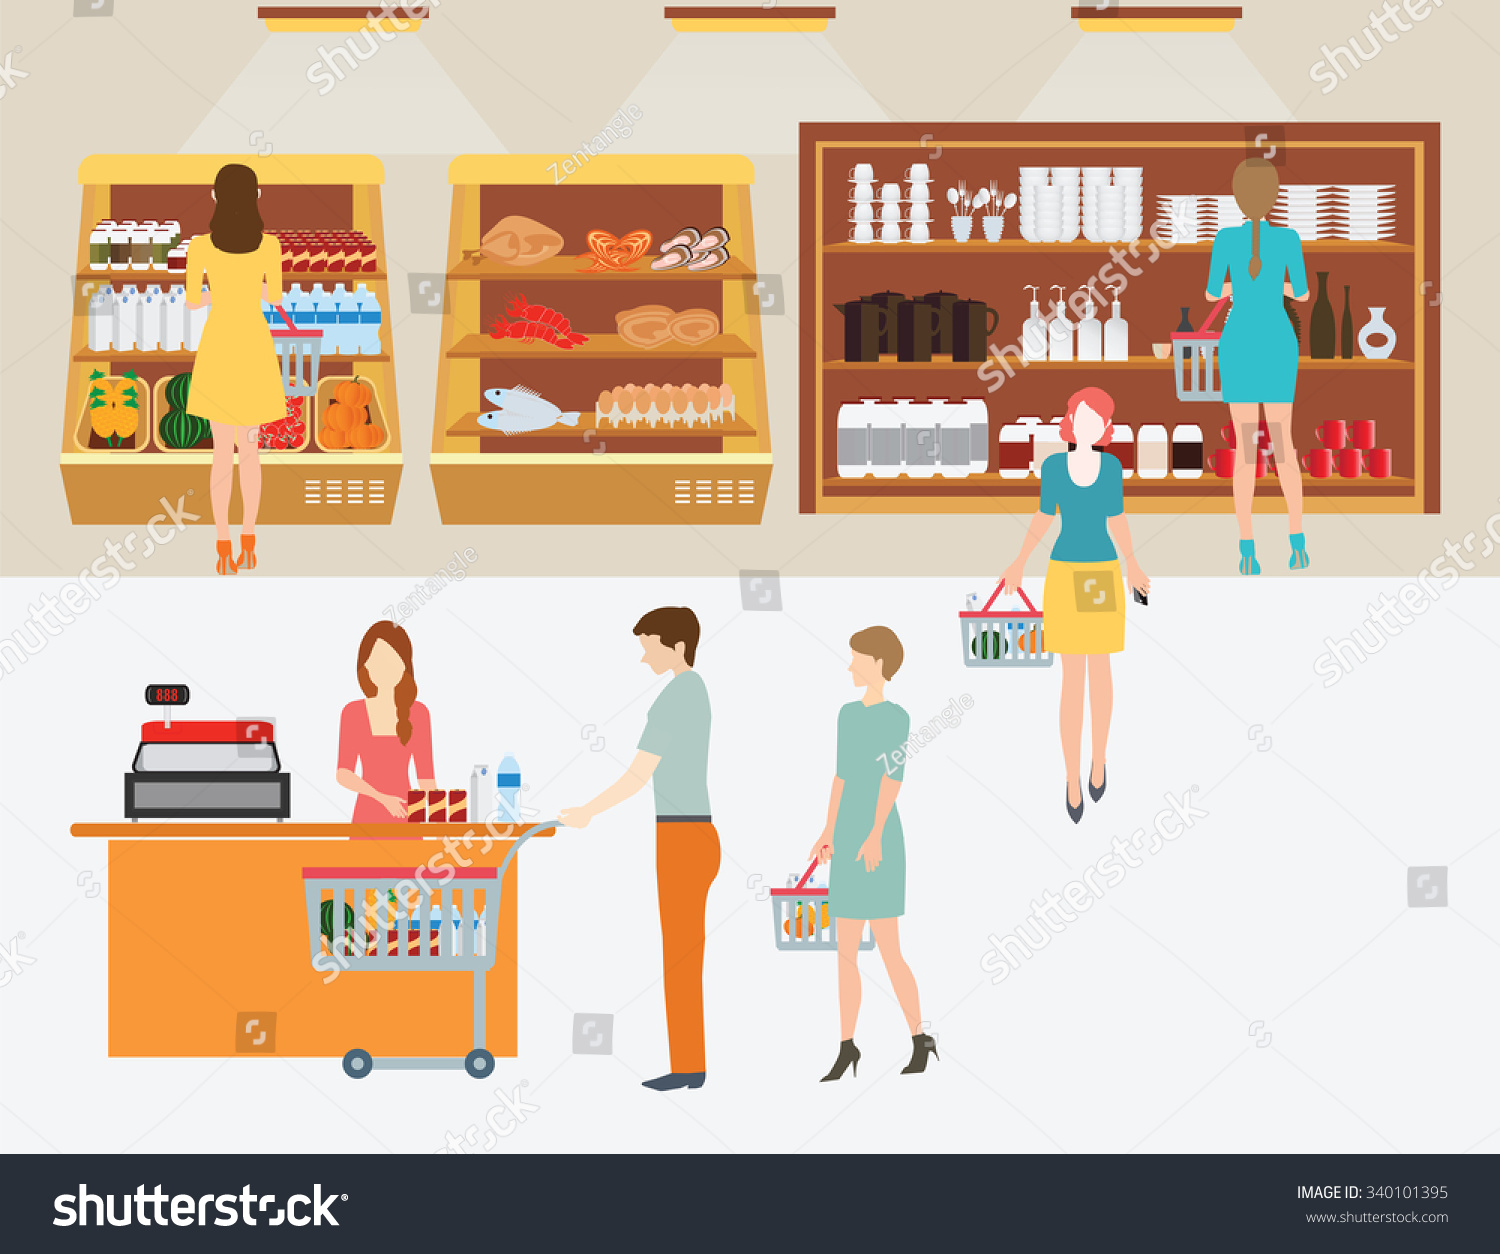 Cartoon Grocery Store Line Up Wiring Diagrams Circuits Gt Led Table Reading Lamp Circuit L35831 Nextgr Royalty Free People In Supermarket 340101395 Stock Rh Avopix Com Bank